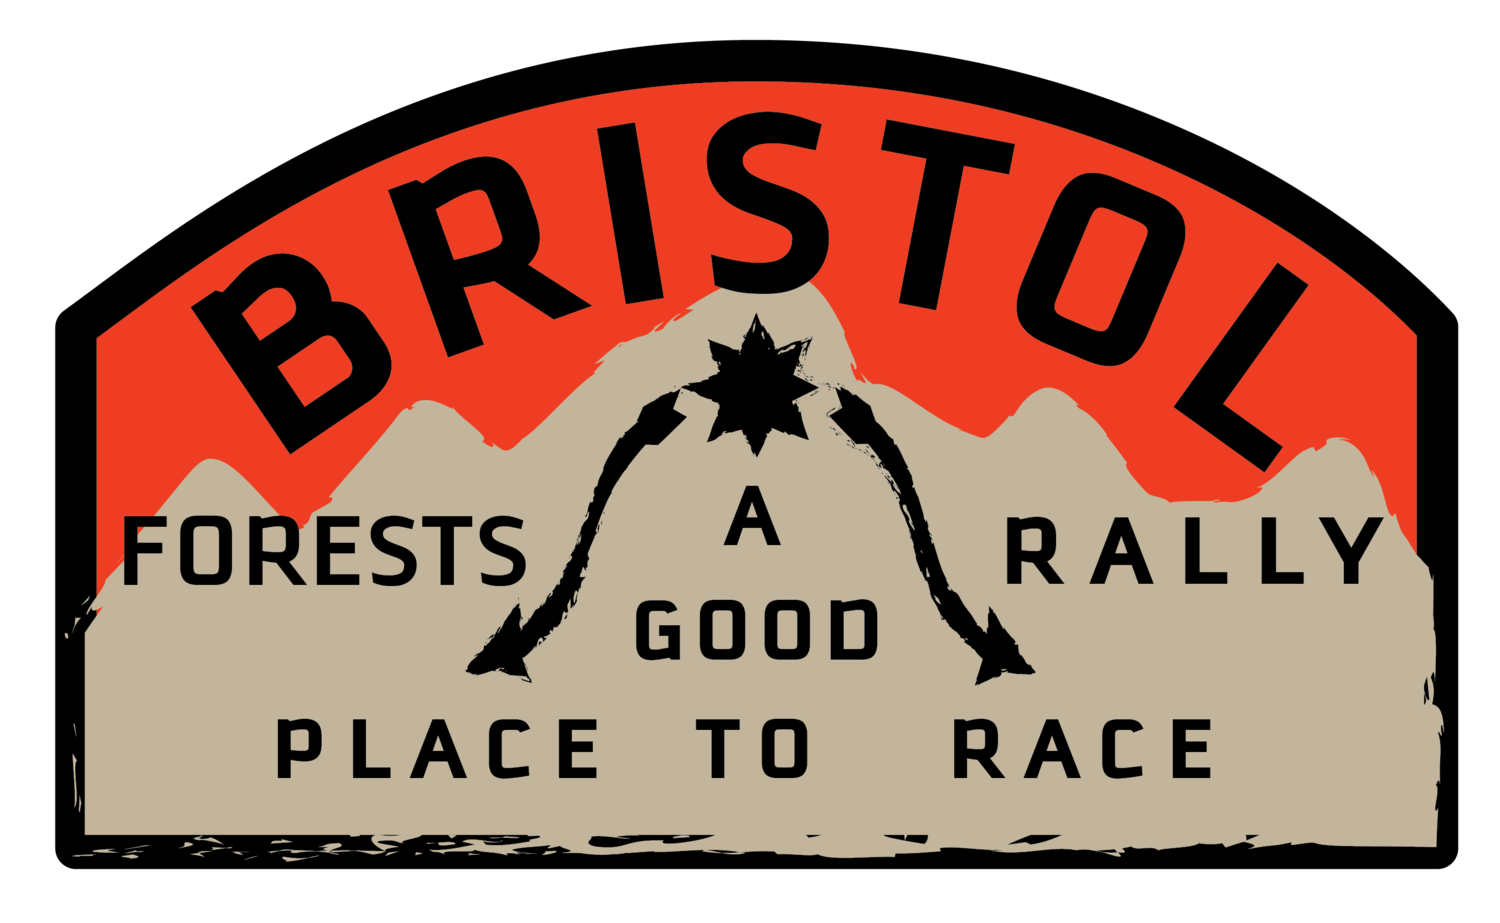 bristol forests rally logo